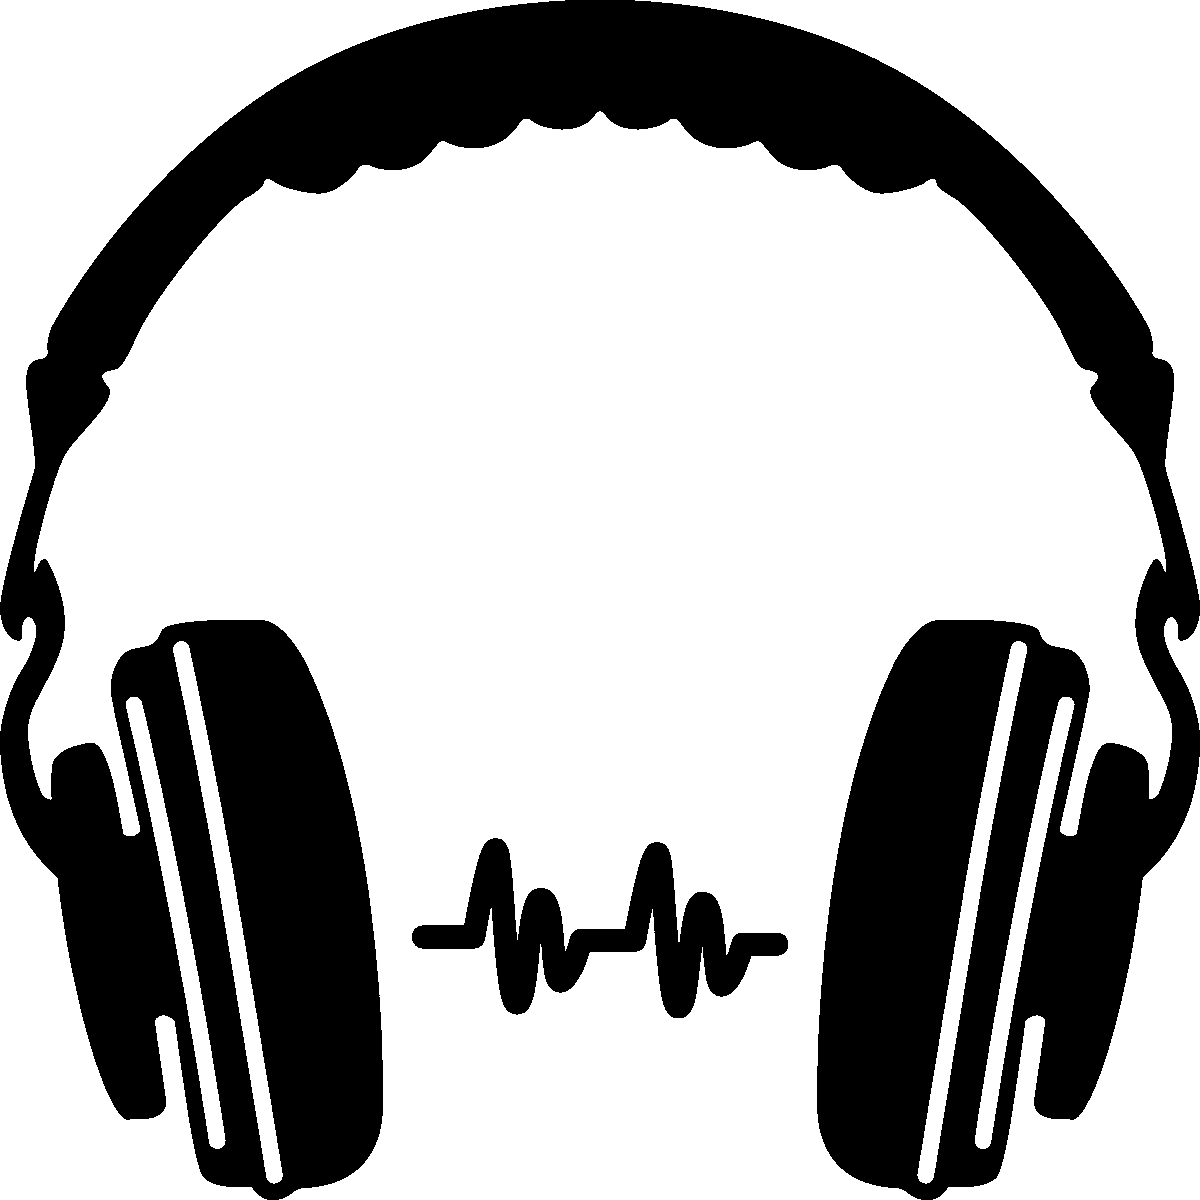 Silhouette at getdrawings com. Headphones clipart dj headphone